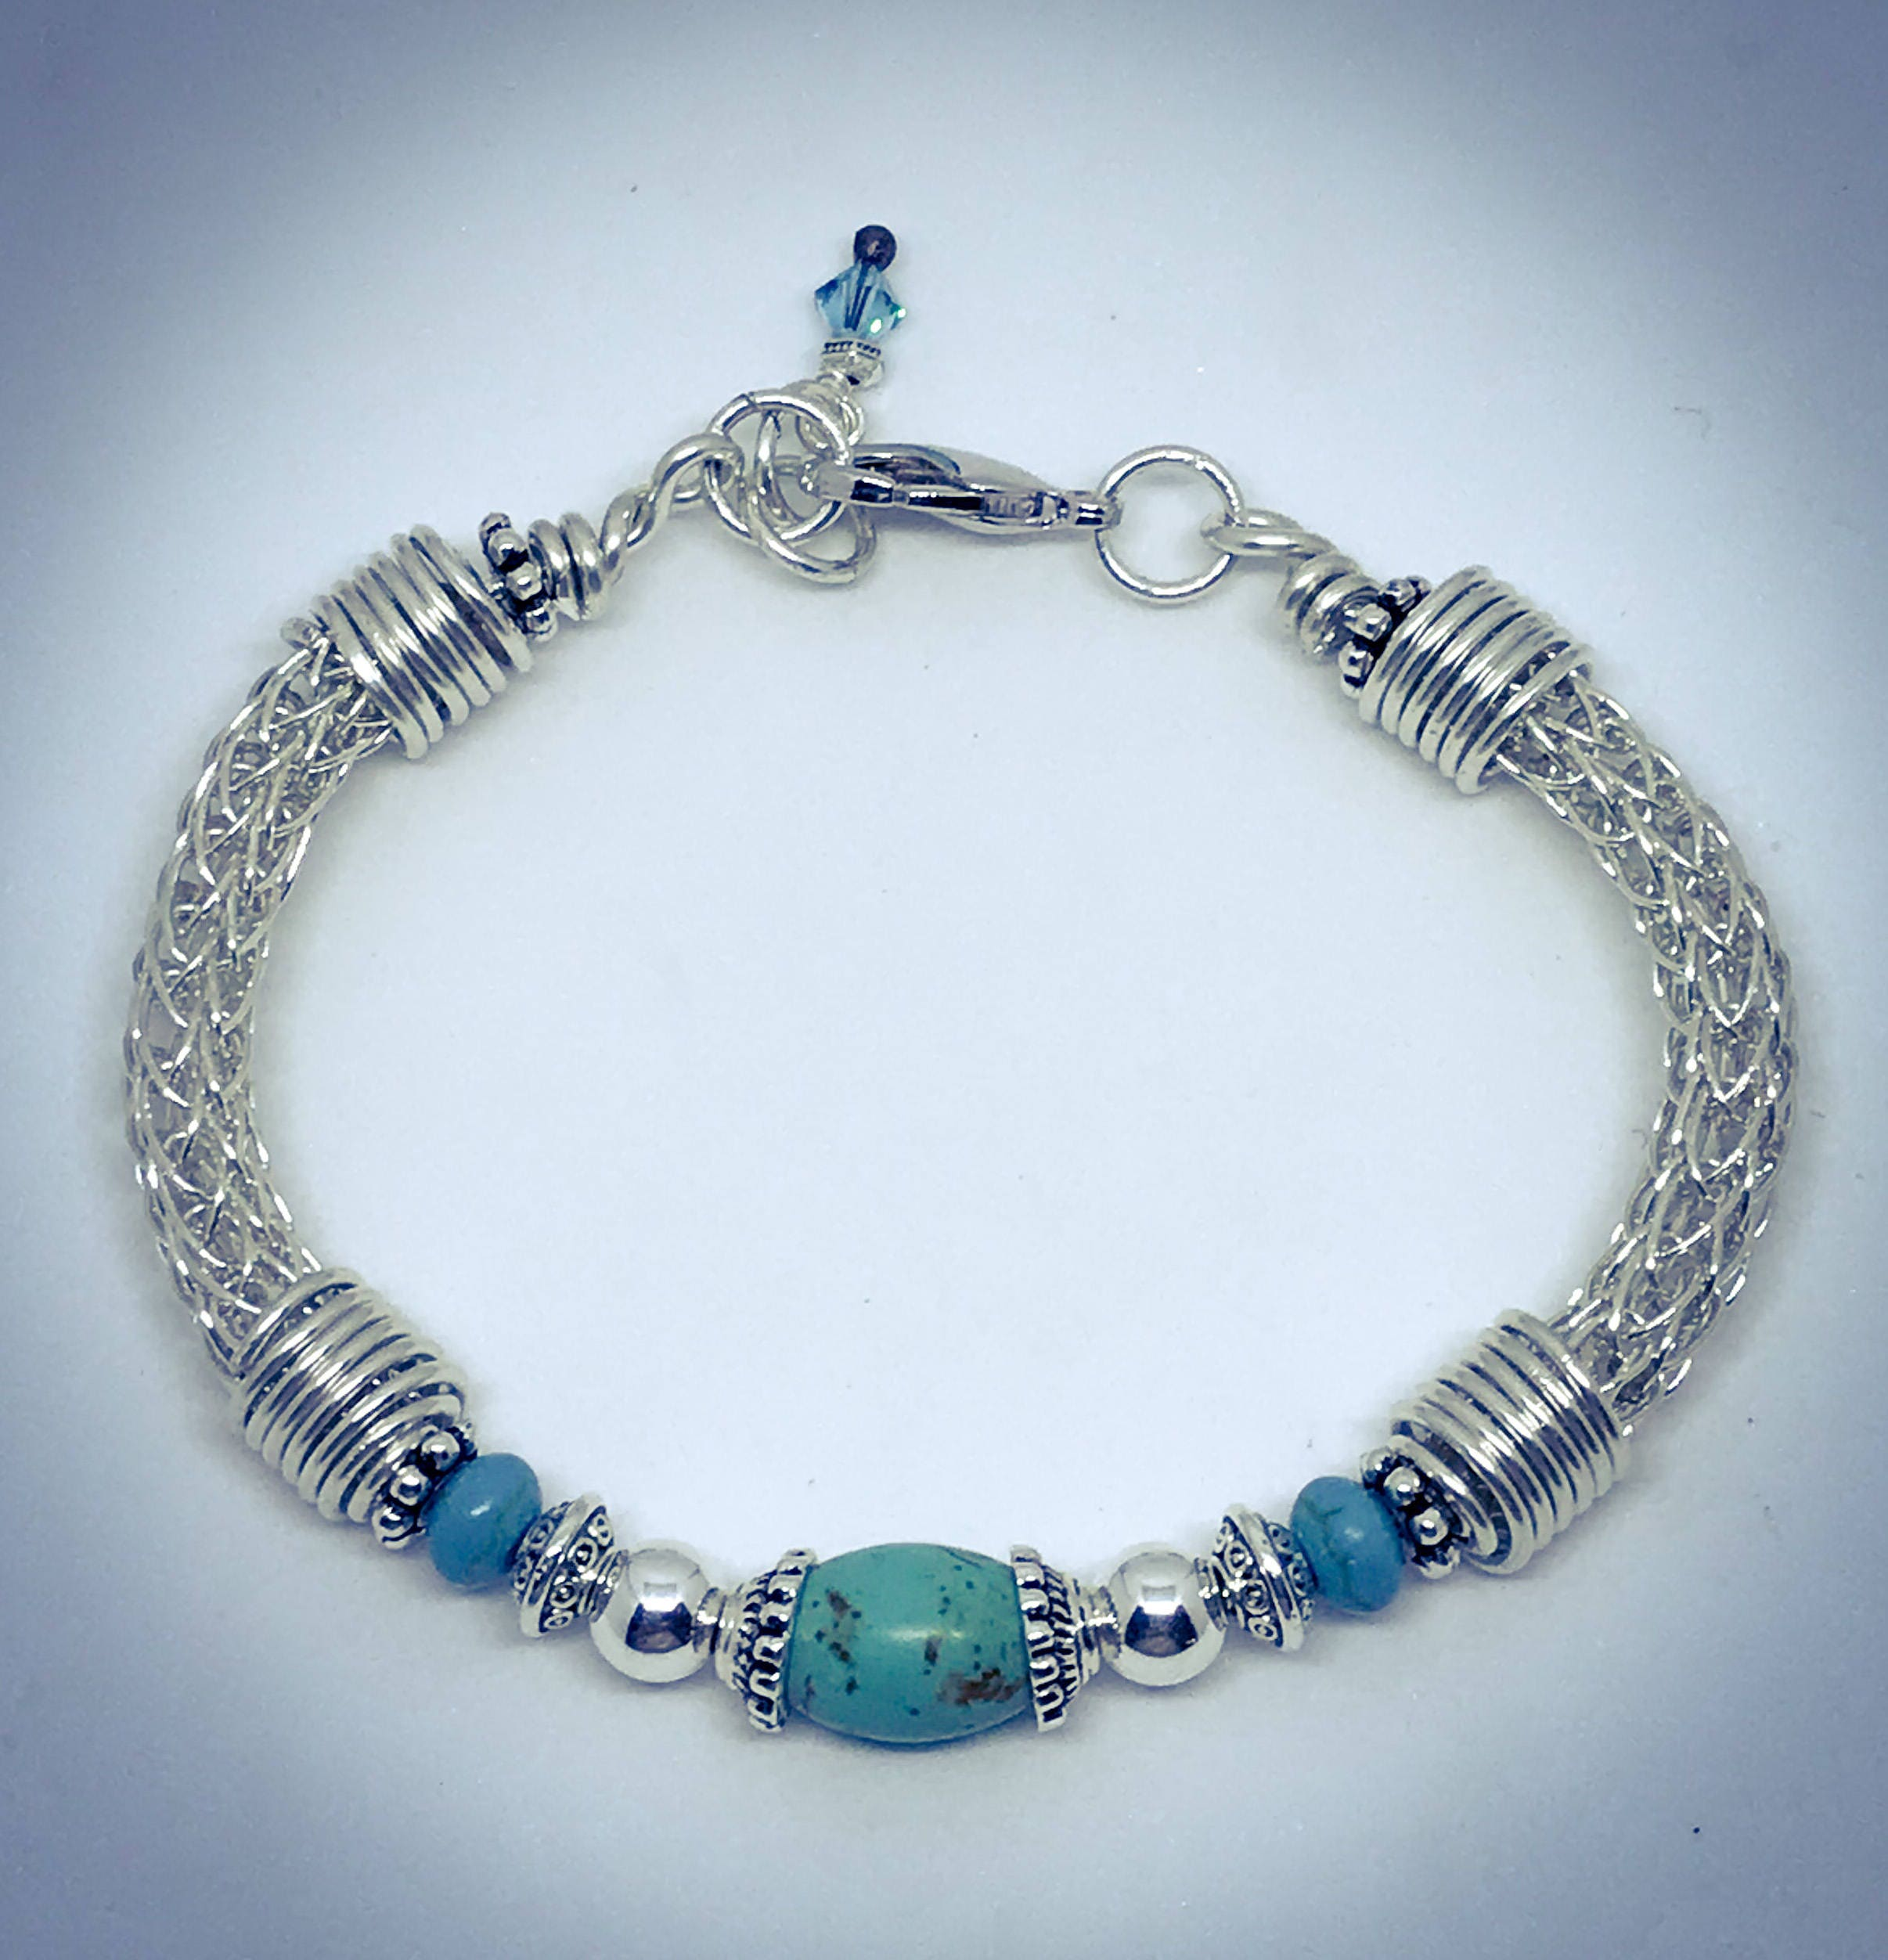 Sterling Silver Viking Knit Bracelet with Turquoise Dyed Magnesite Beads